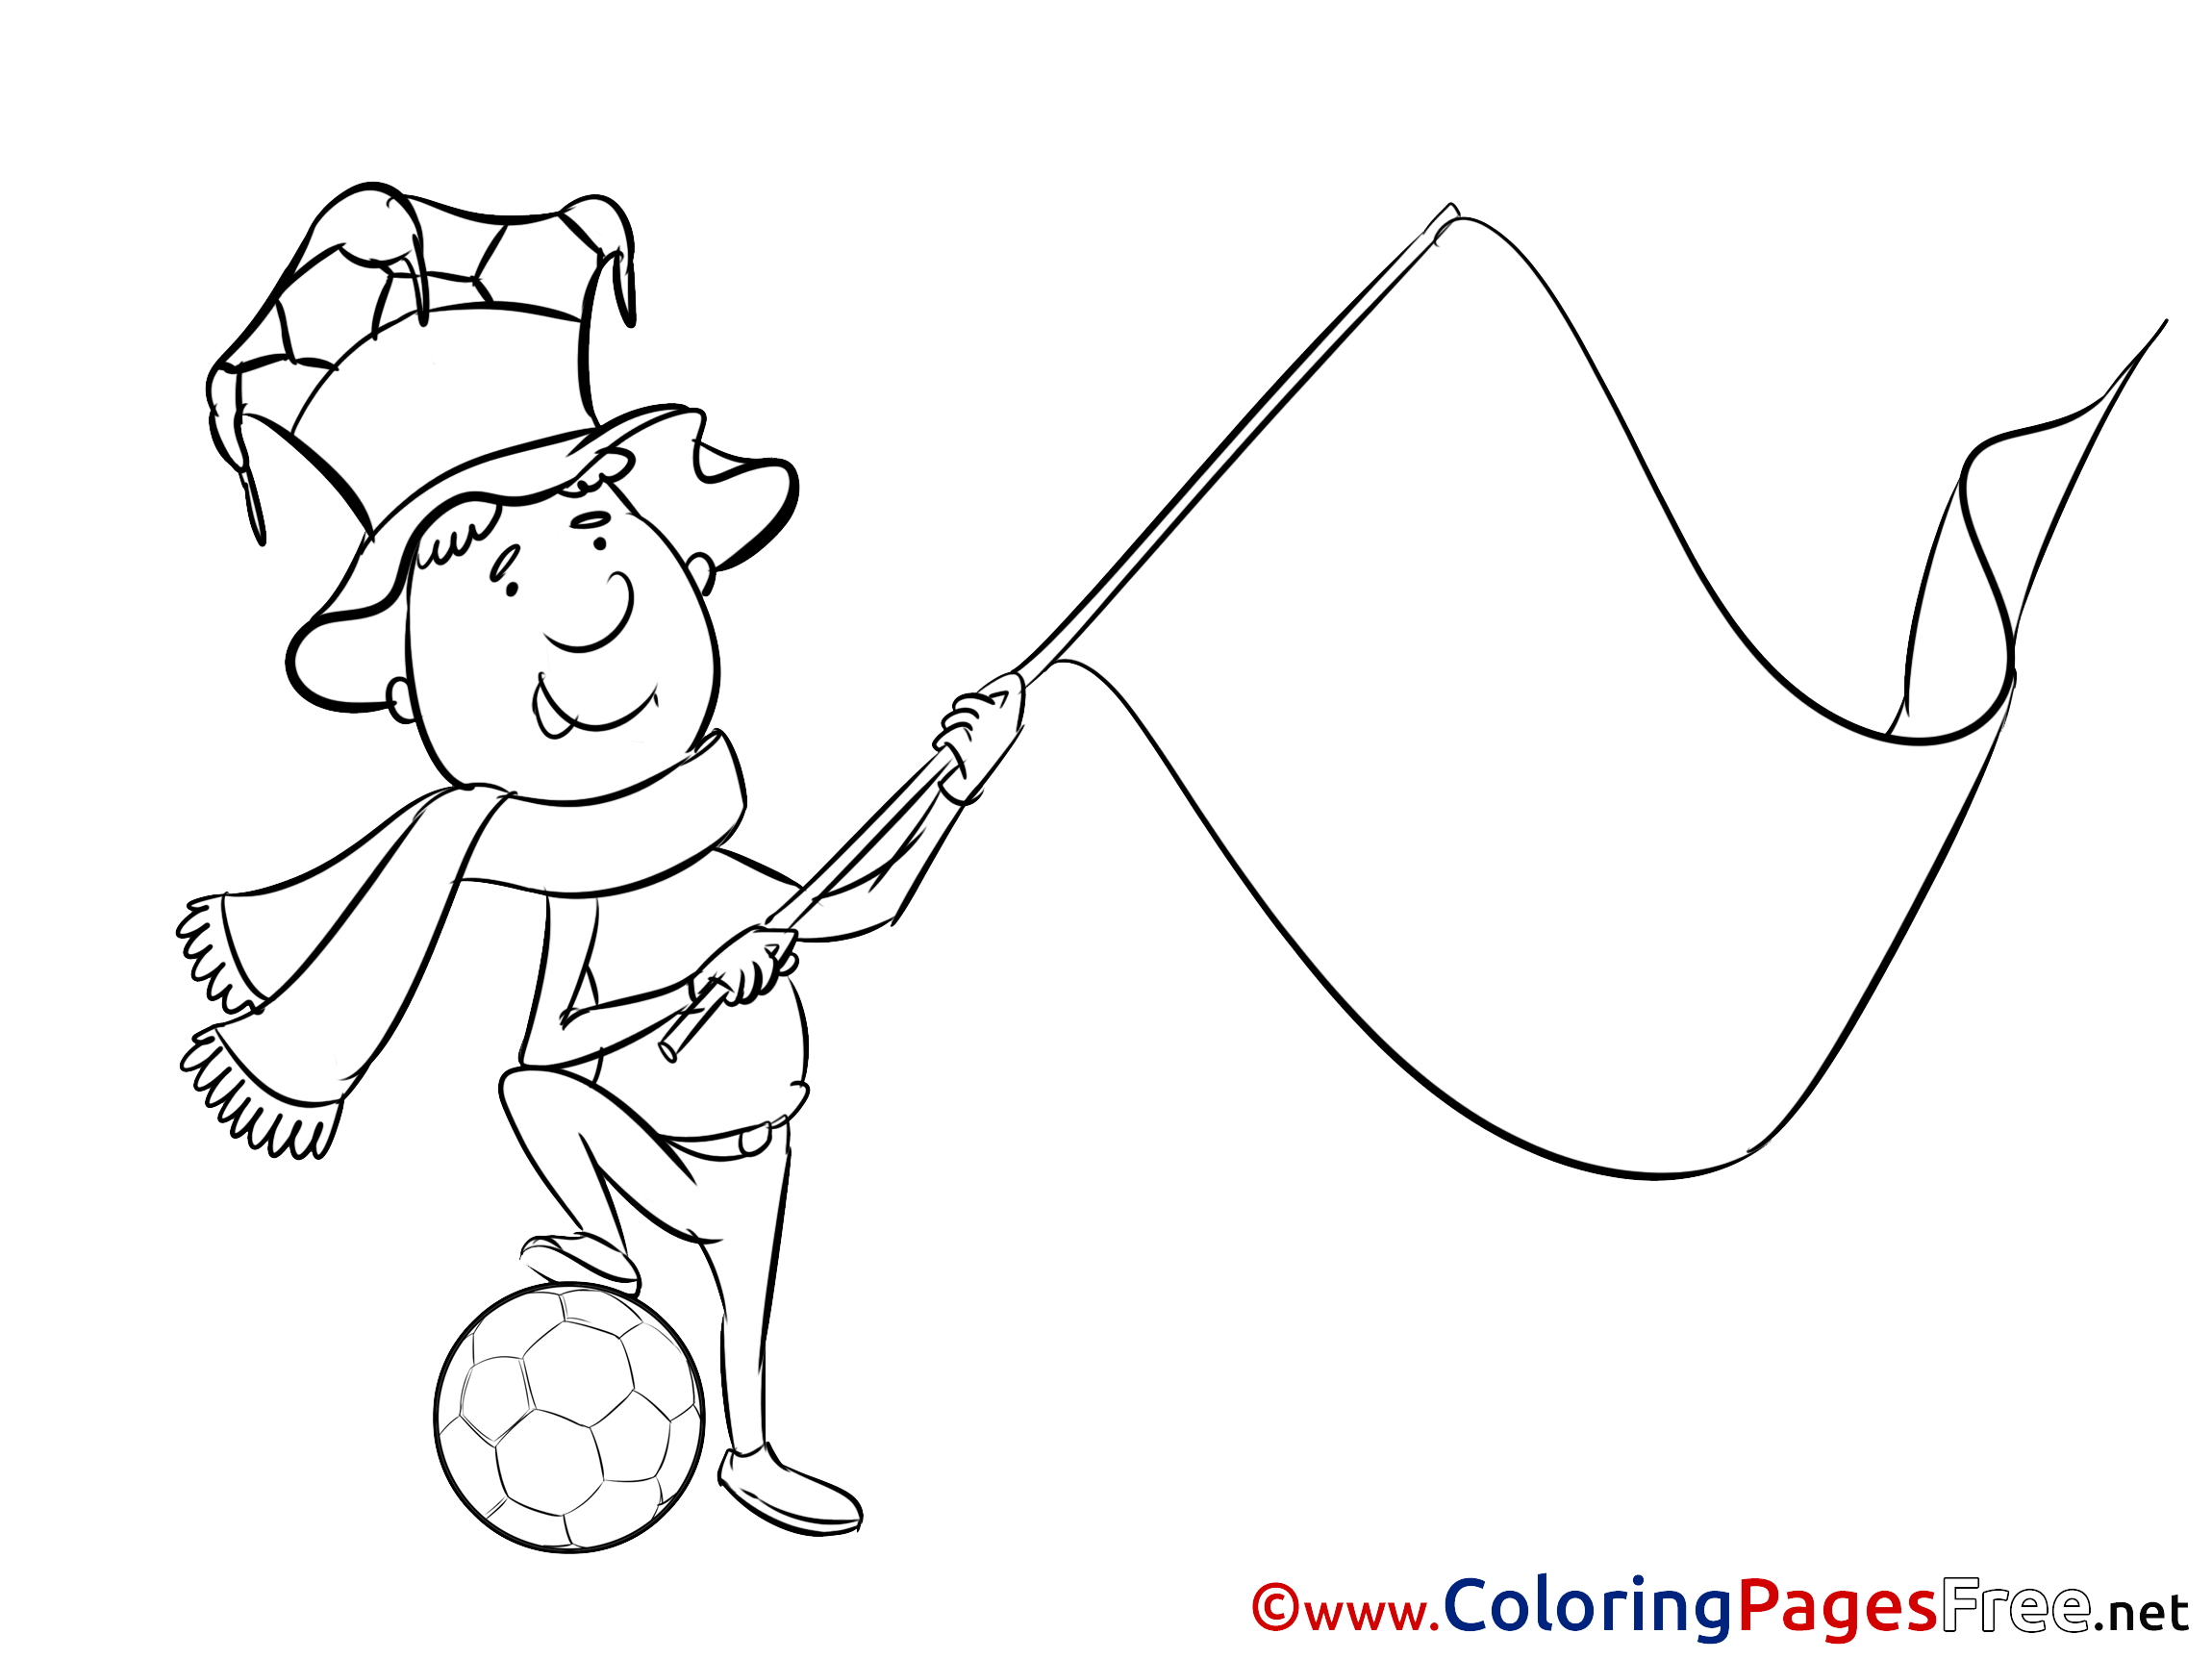 Coloring Pages Flag Albania Best Ideas For Printable And